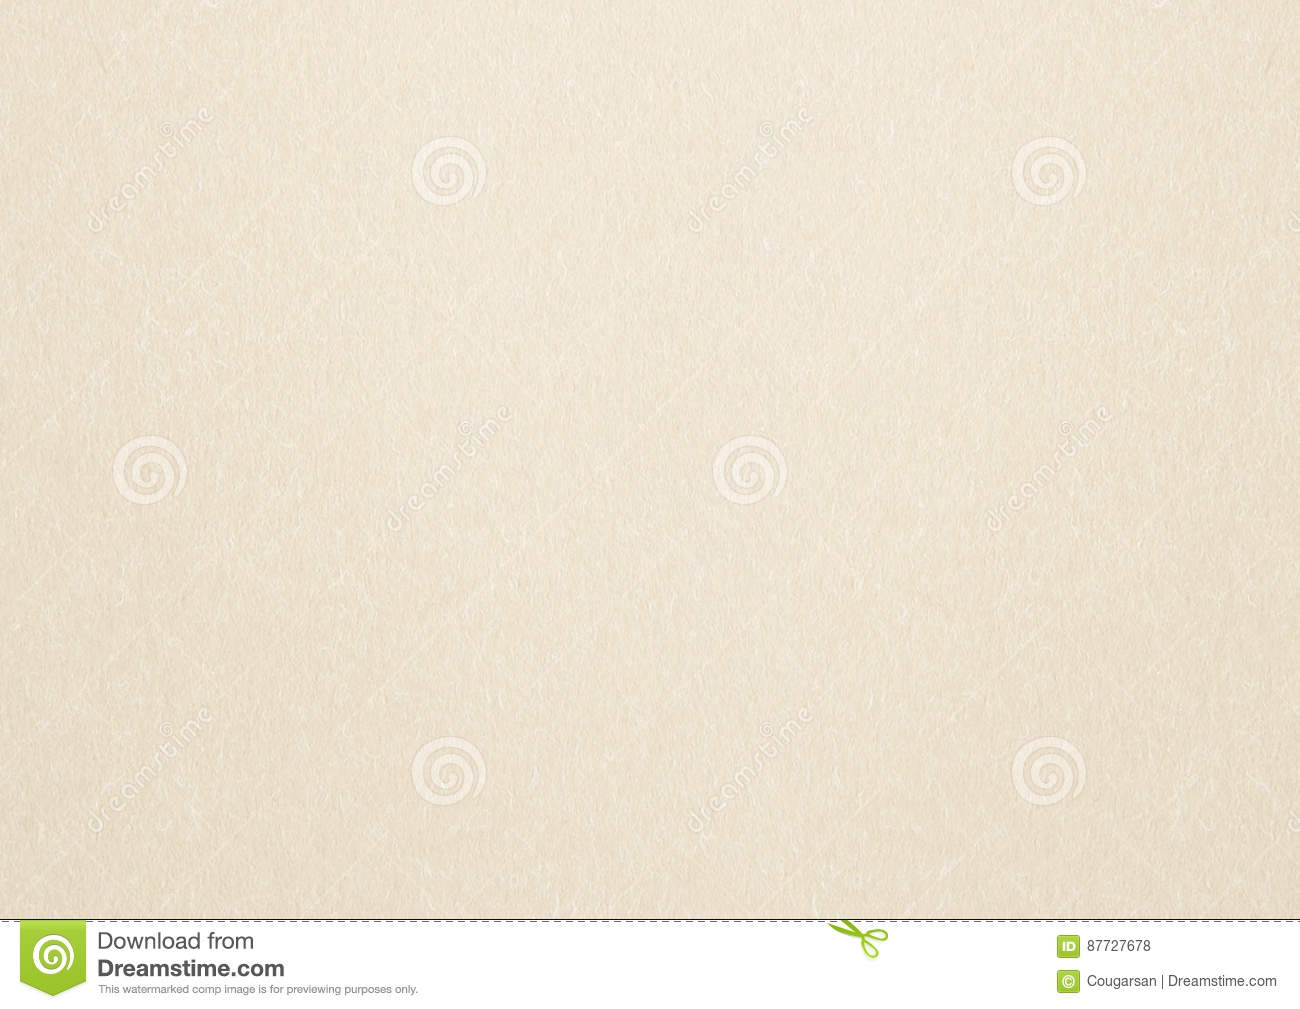 Pastel neutral sand color fashion pattern paper background